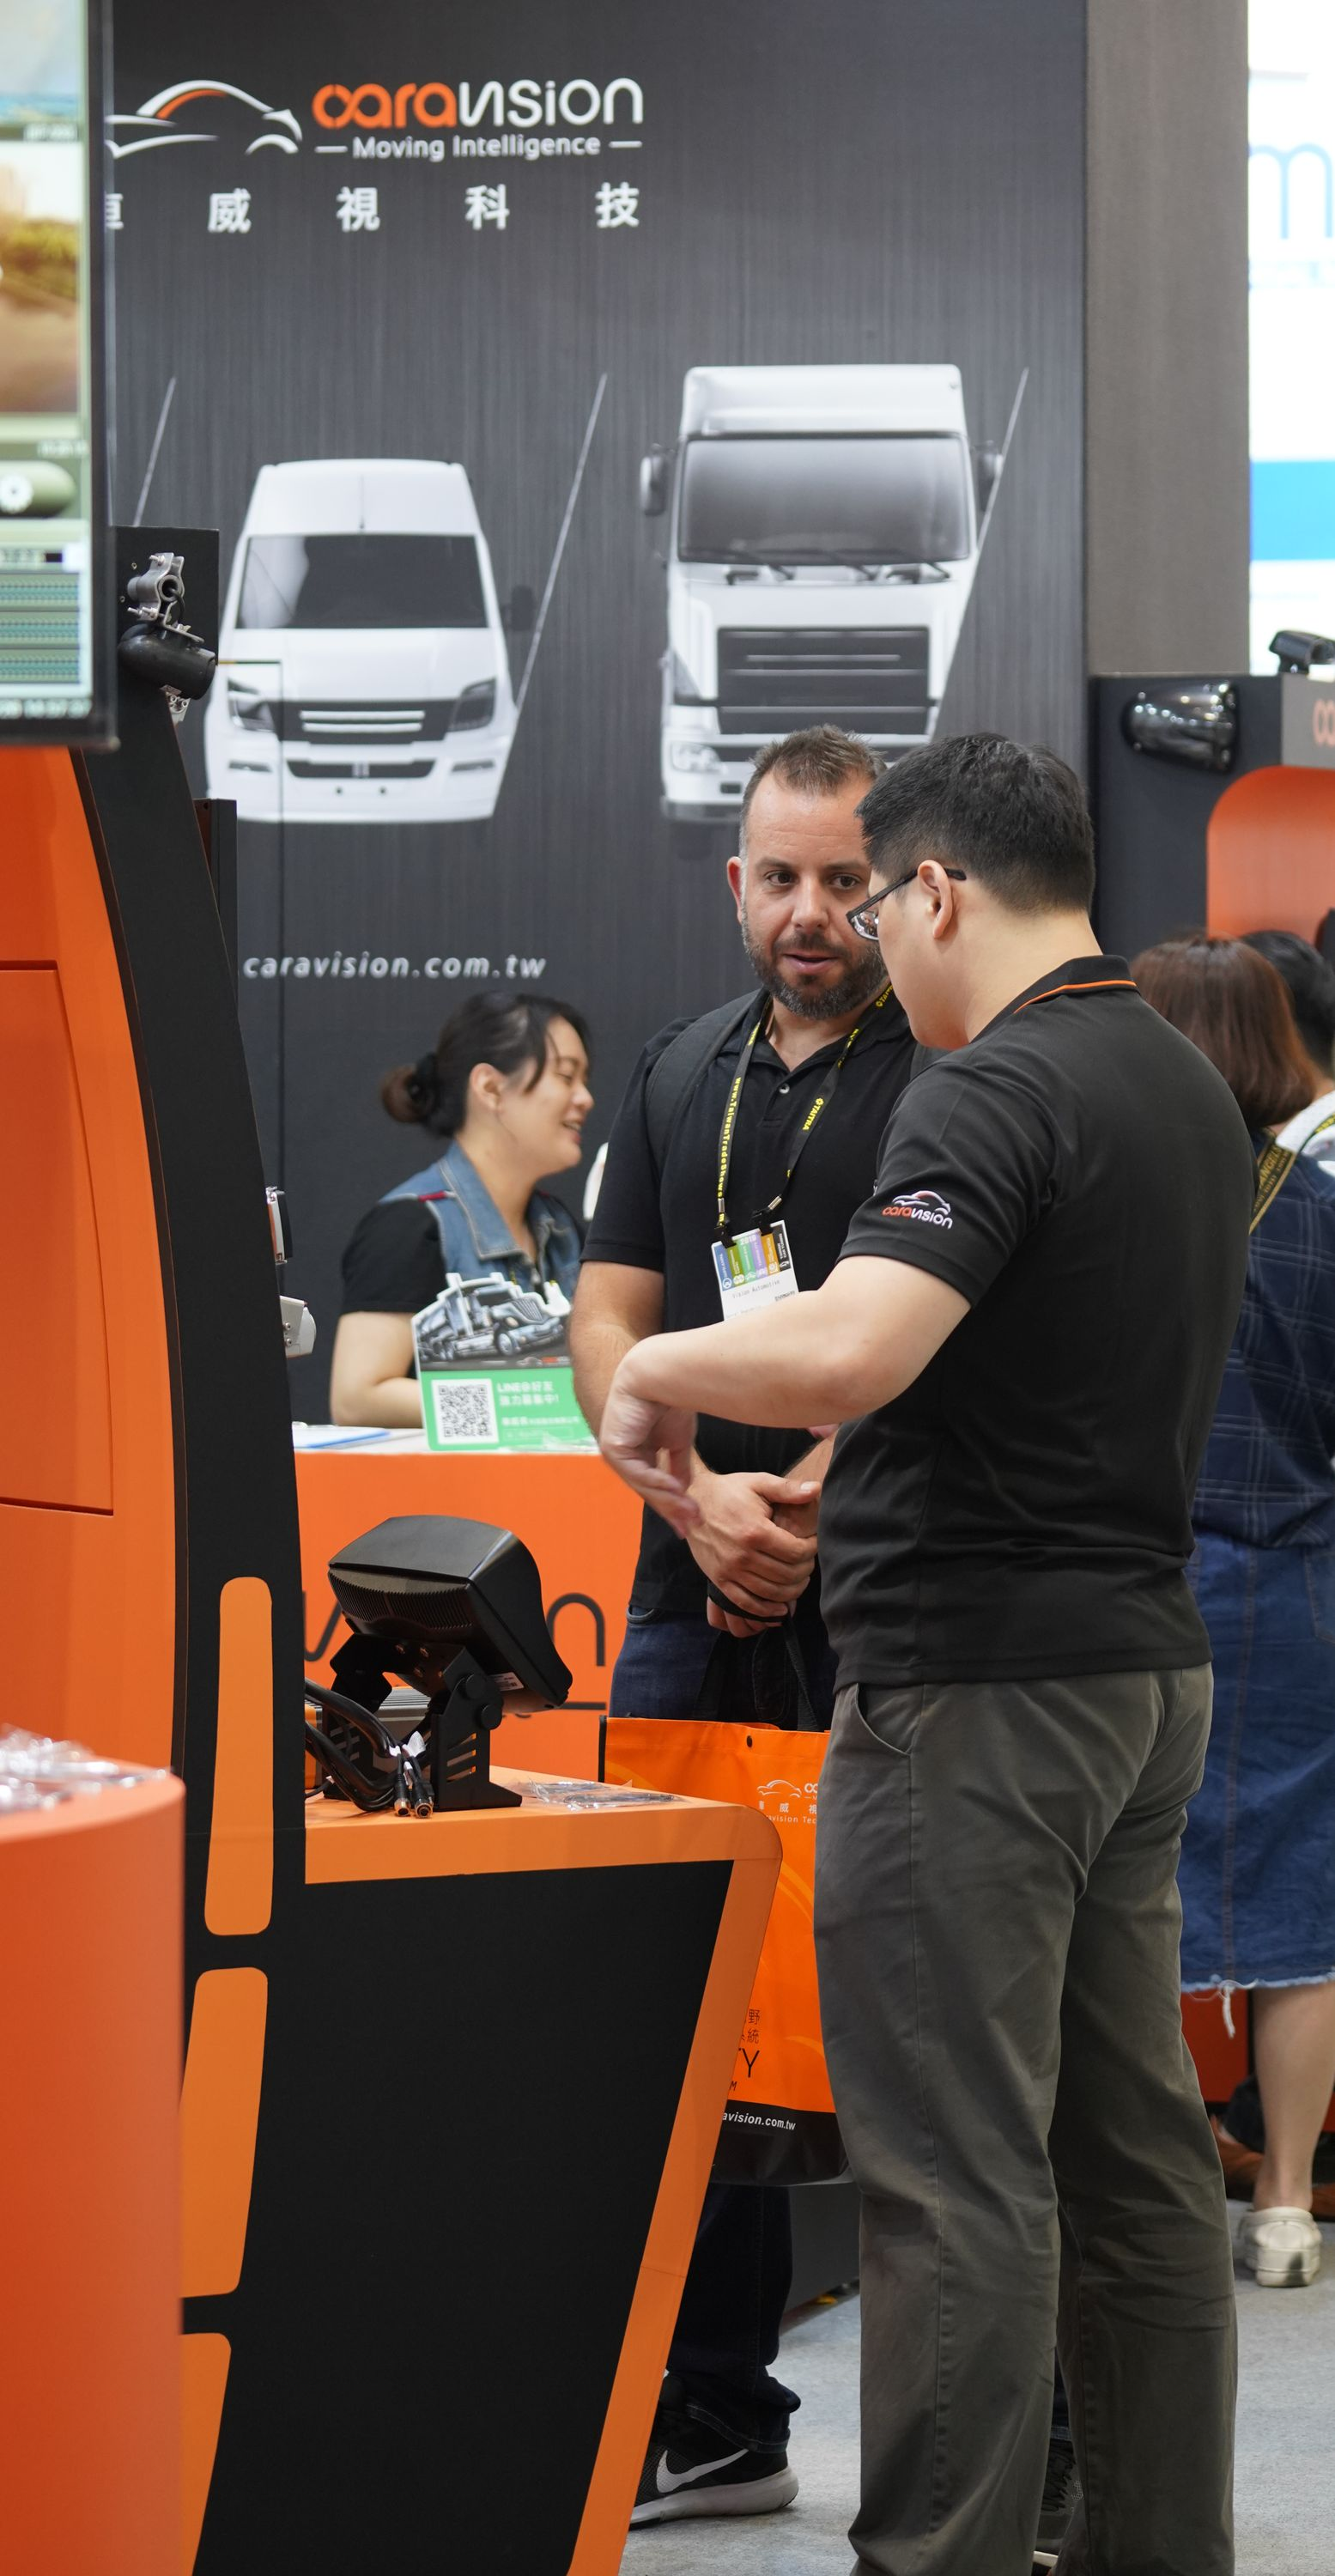 https://storage.googleapis.com/www.taiwantradeshow.com.tw/model/photo/AP/2019/PH00033937-name.jpg